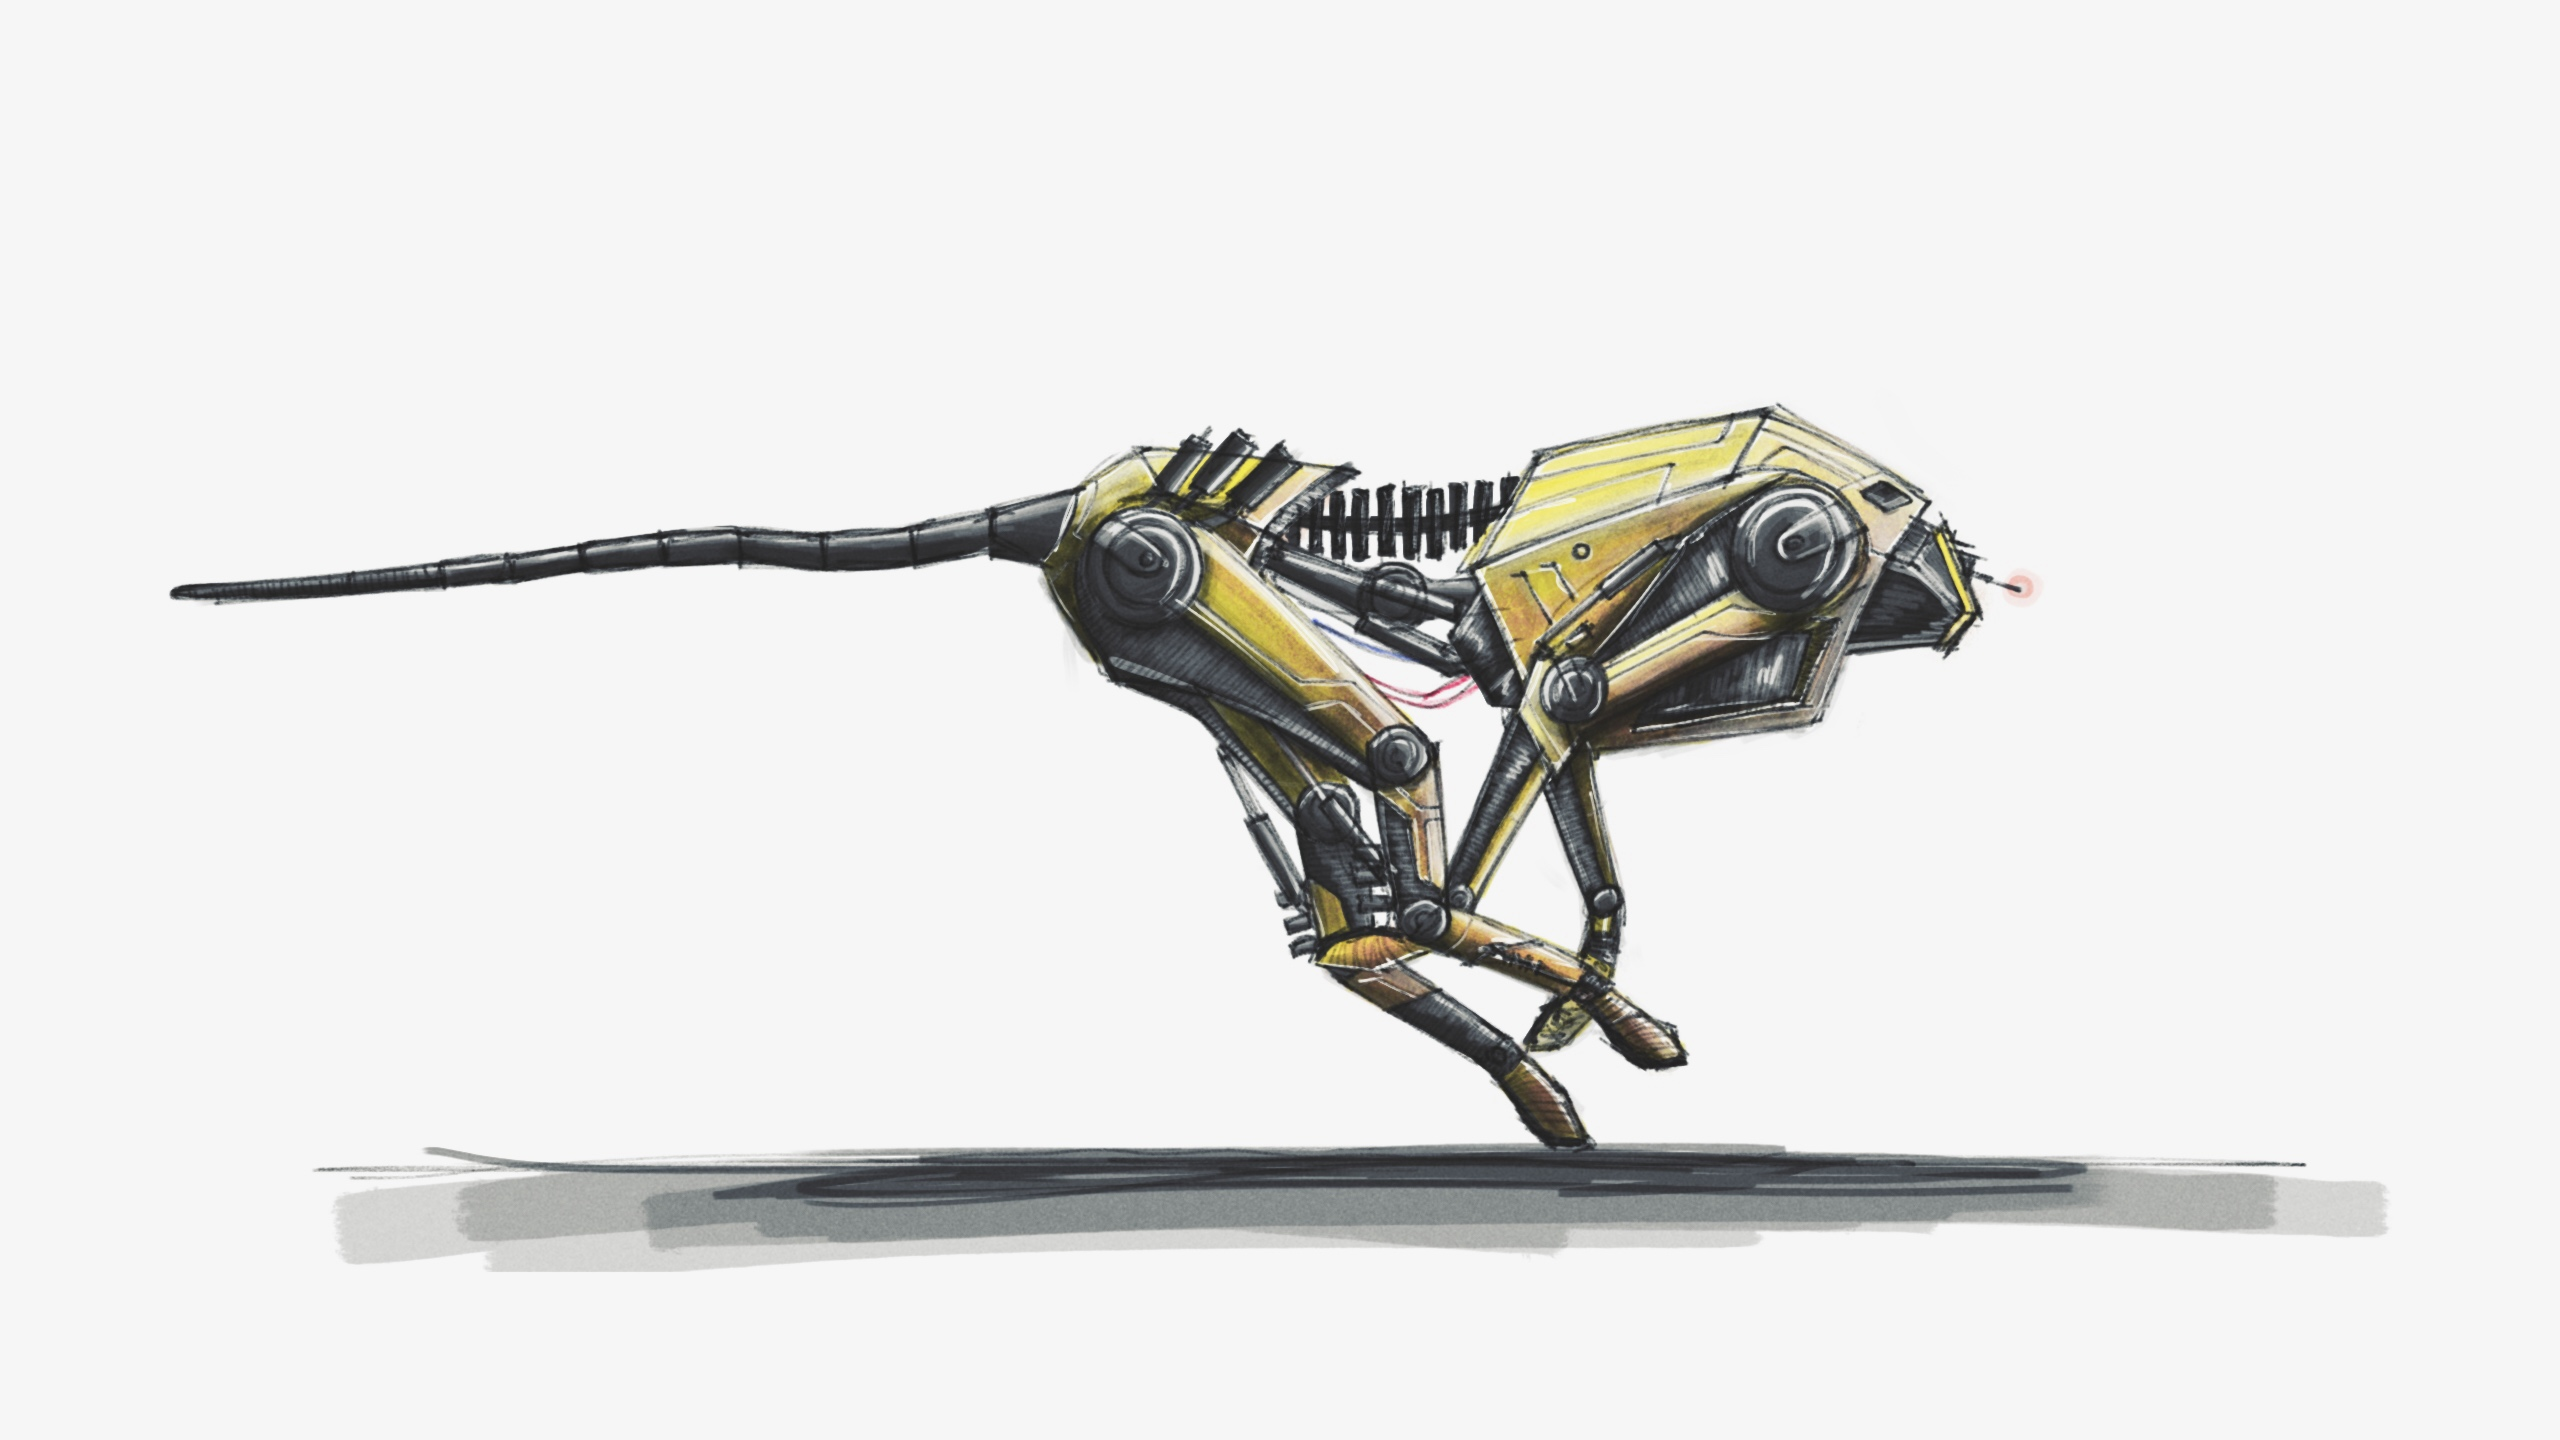 concept cheetah robot, digital painting